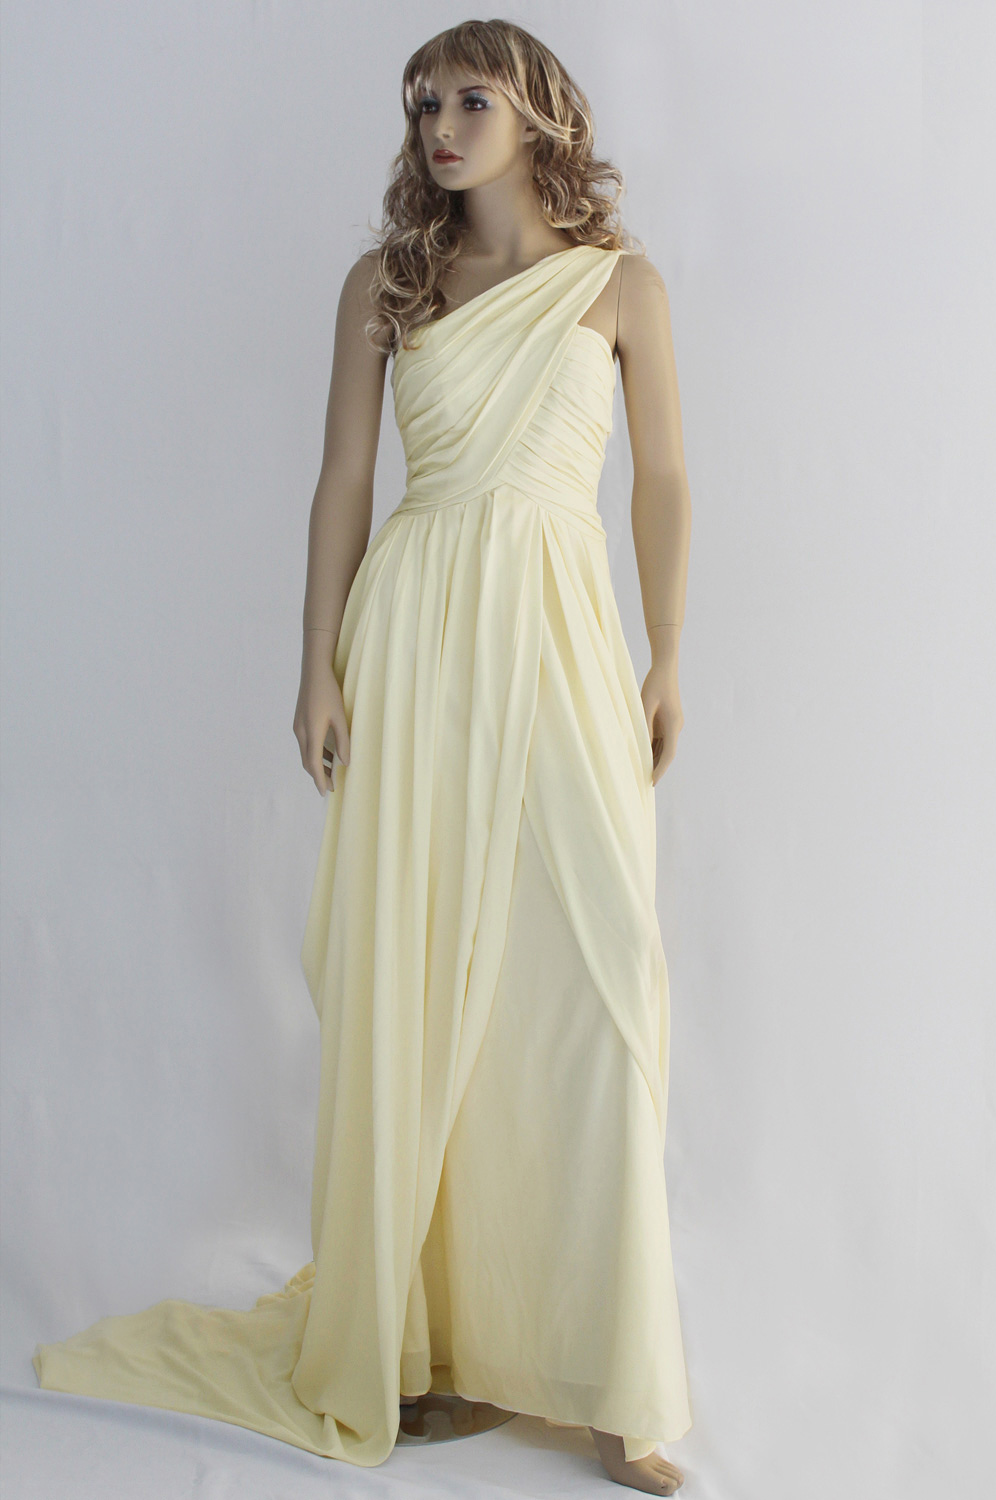 On sale !! eDressit Celebrity Sexy Prom Gown Evening Dress (00092246r)